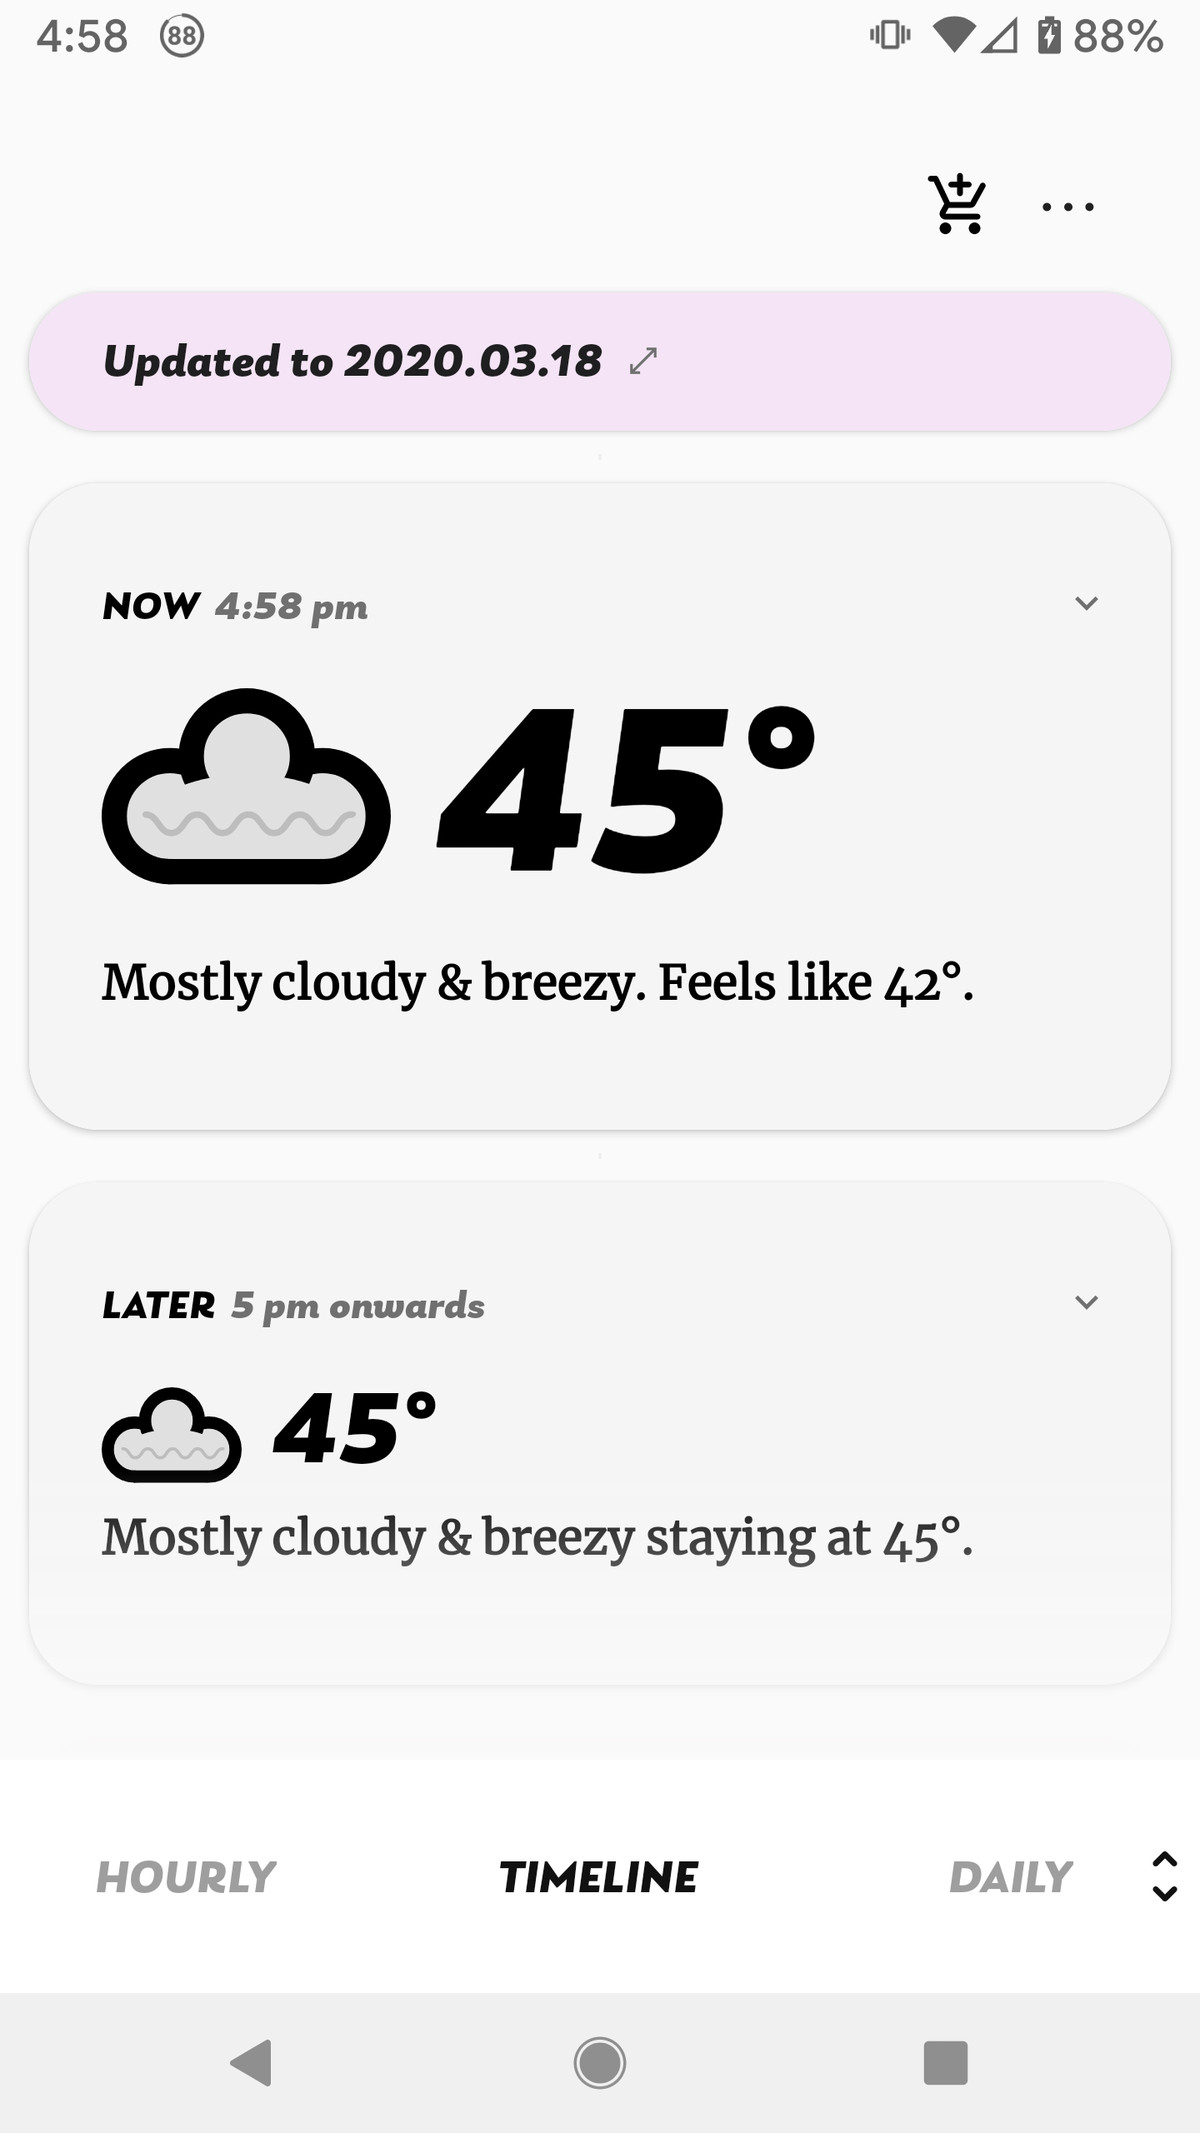 Appy Weather's timeline lets you scroll down to see the current weather and the upcoming forecast.